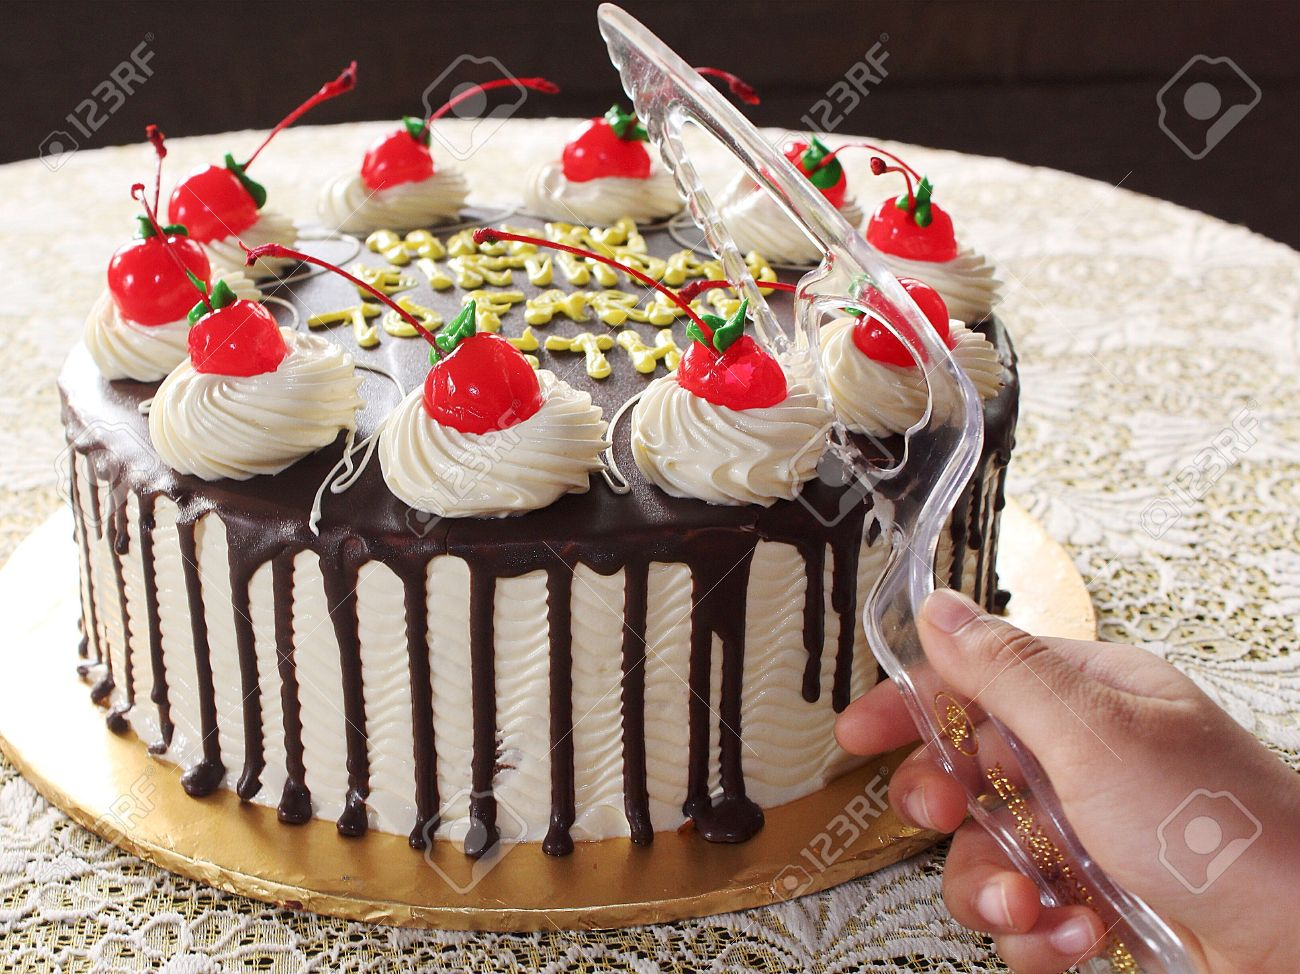 Birthday Cake Cut Using Plastic Knife Stock Photo